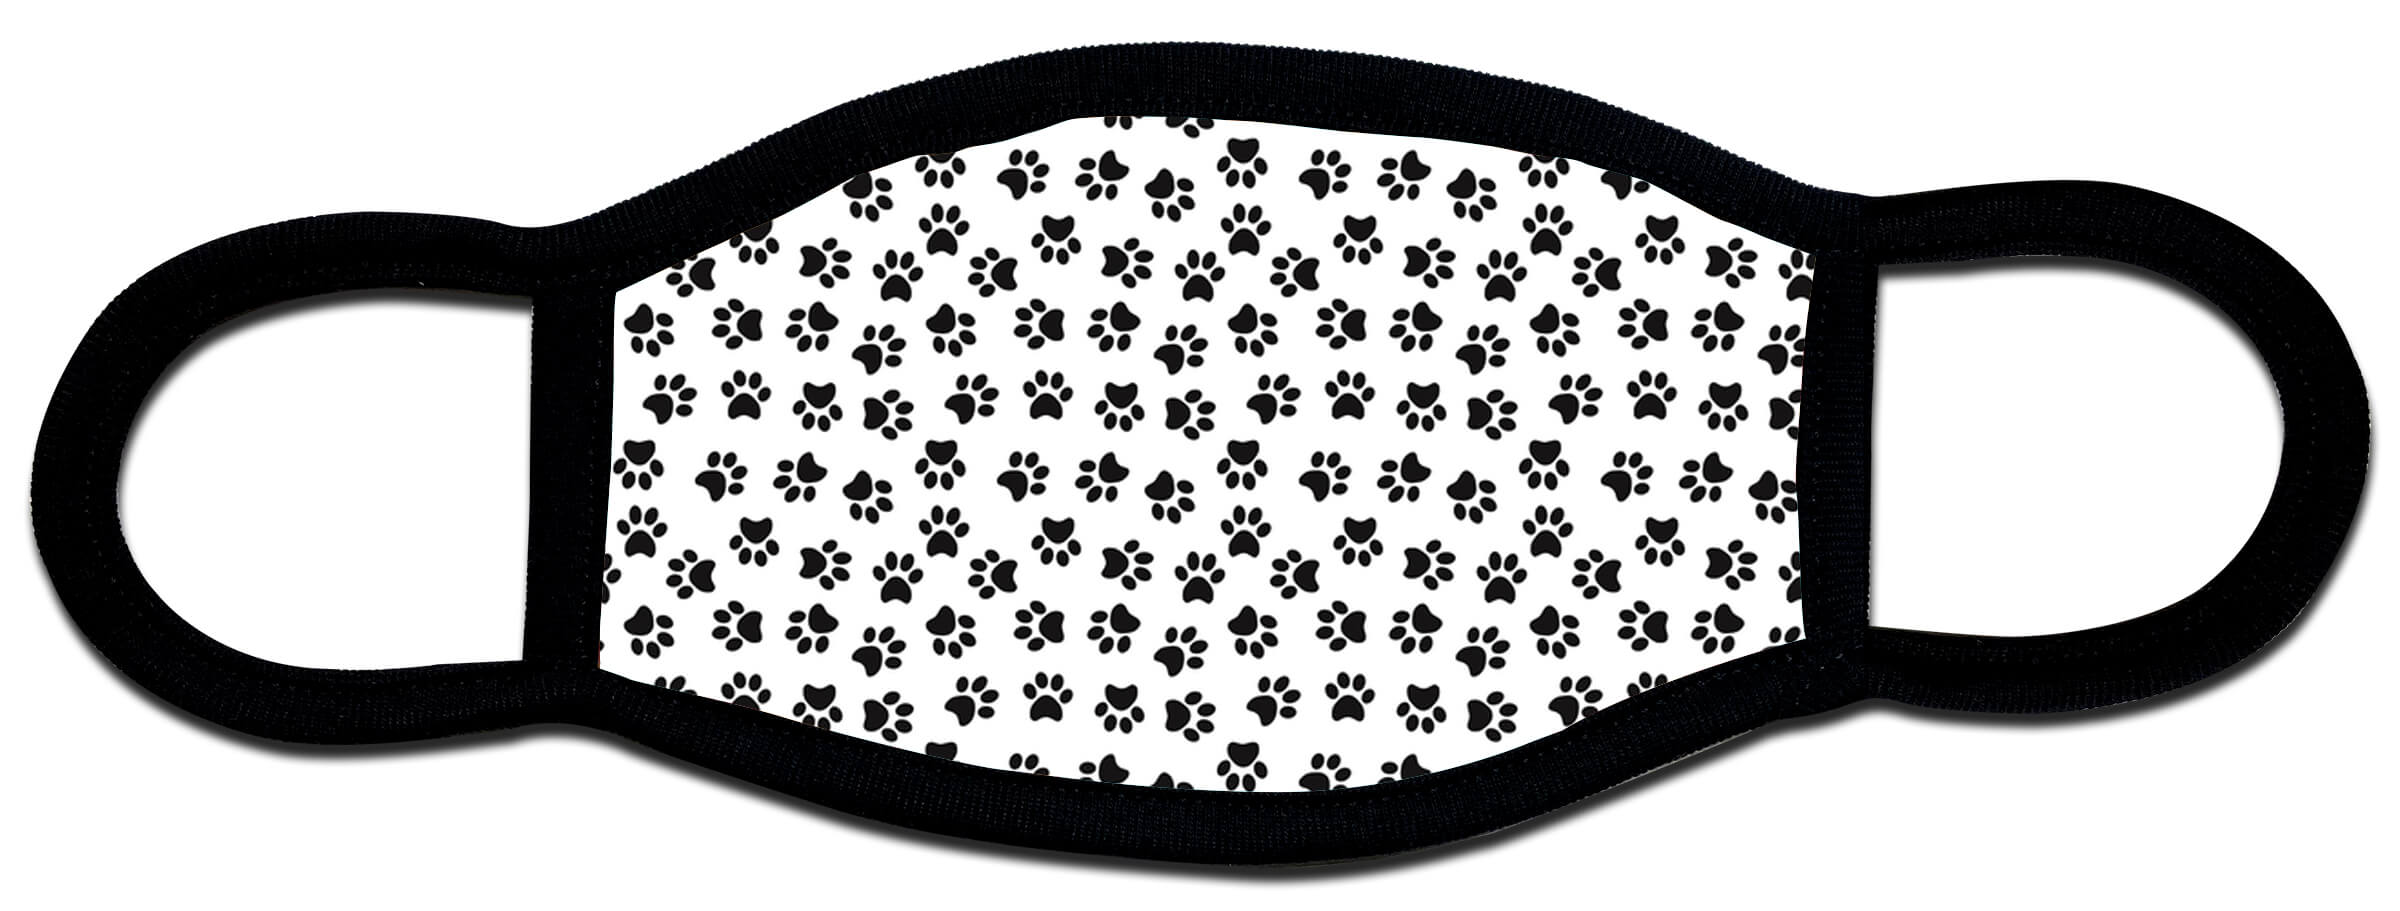 Paw Print custom face mask